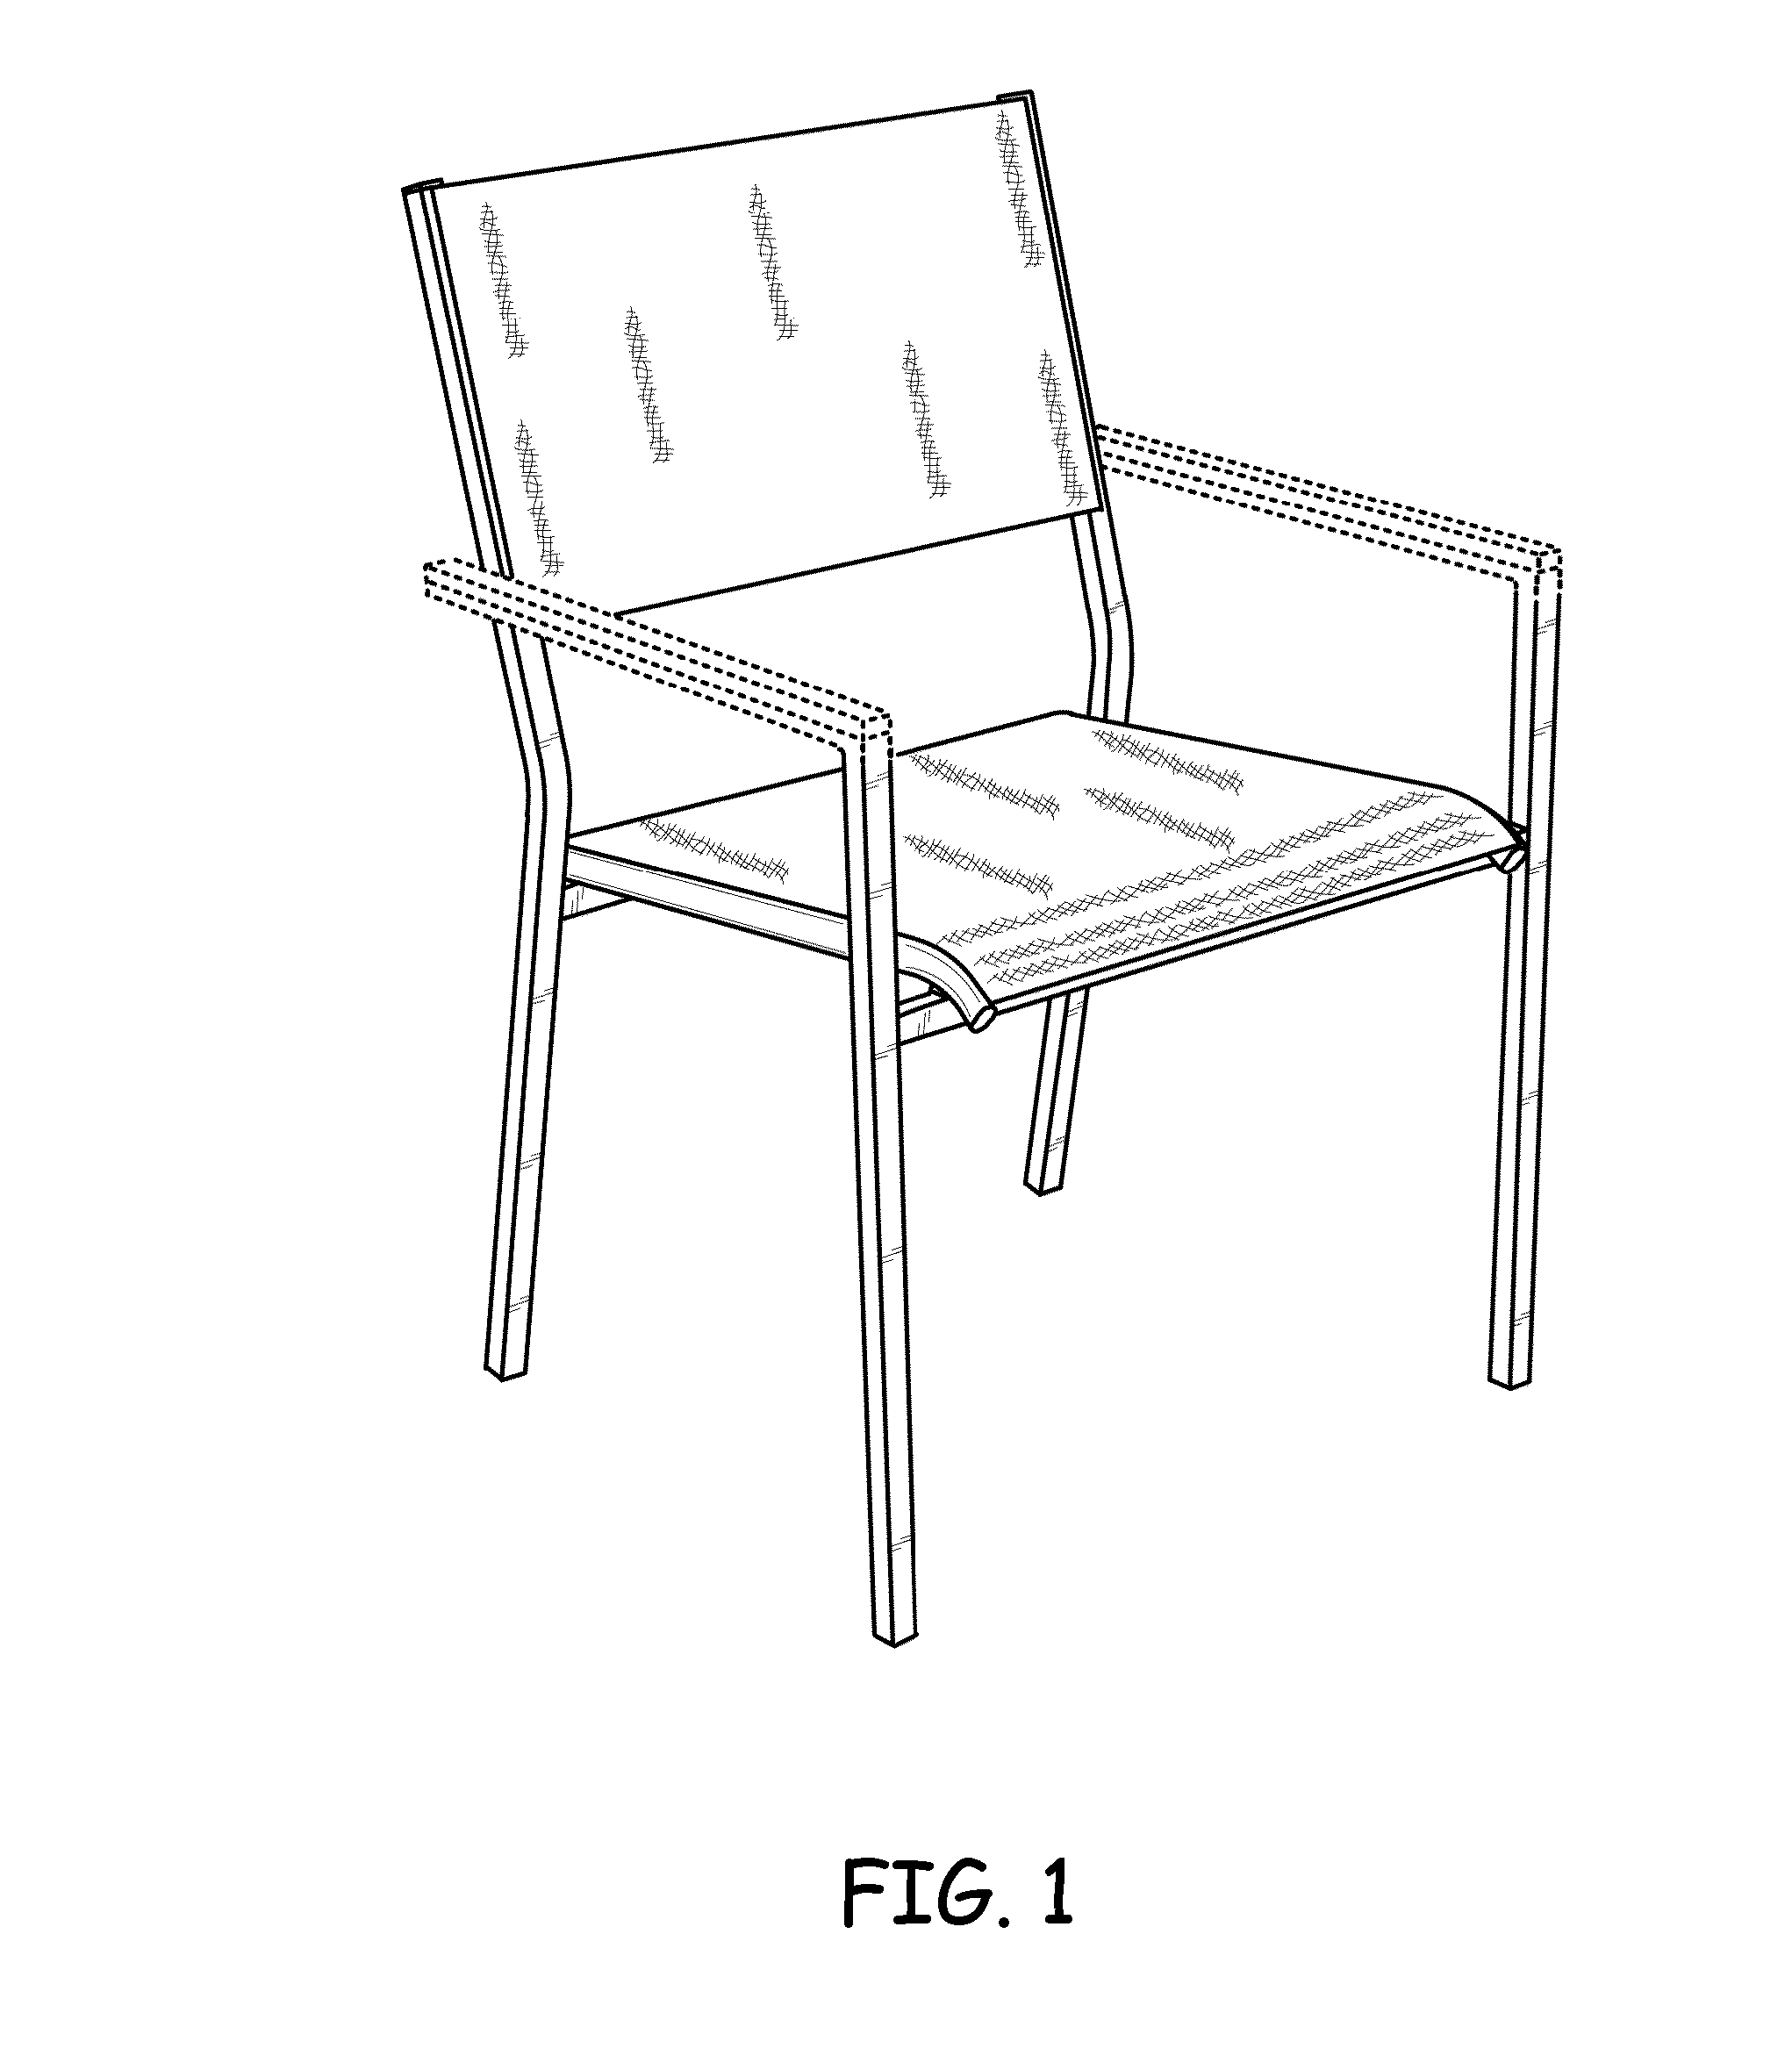 Cool Patent Drawing